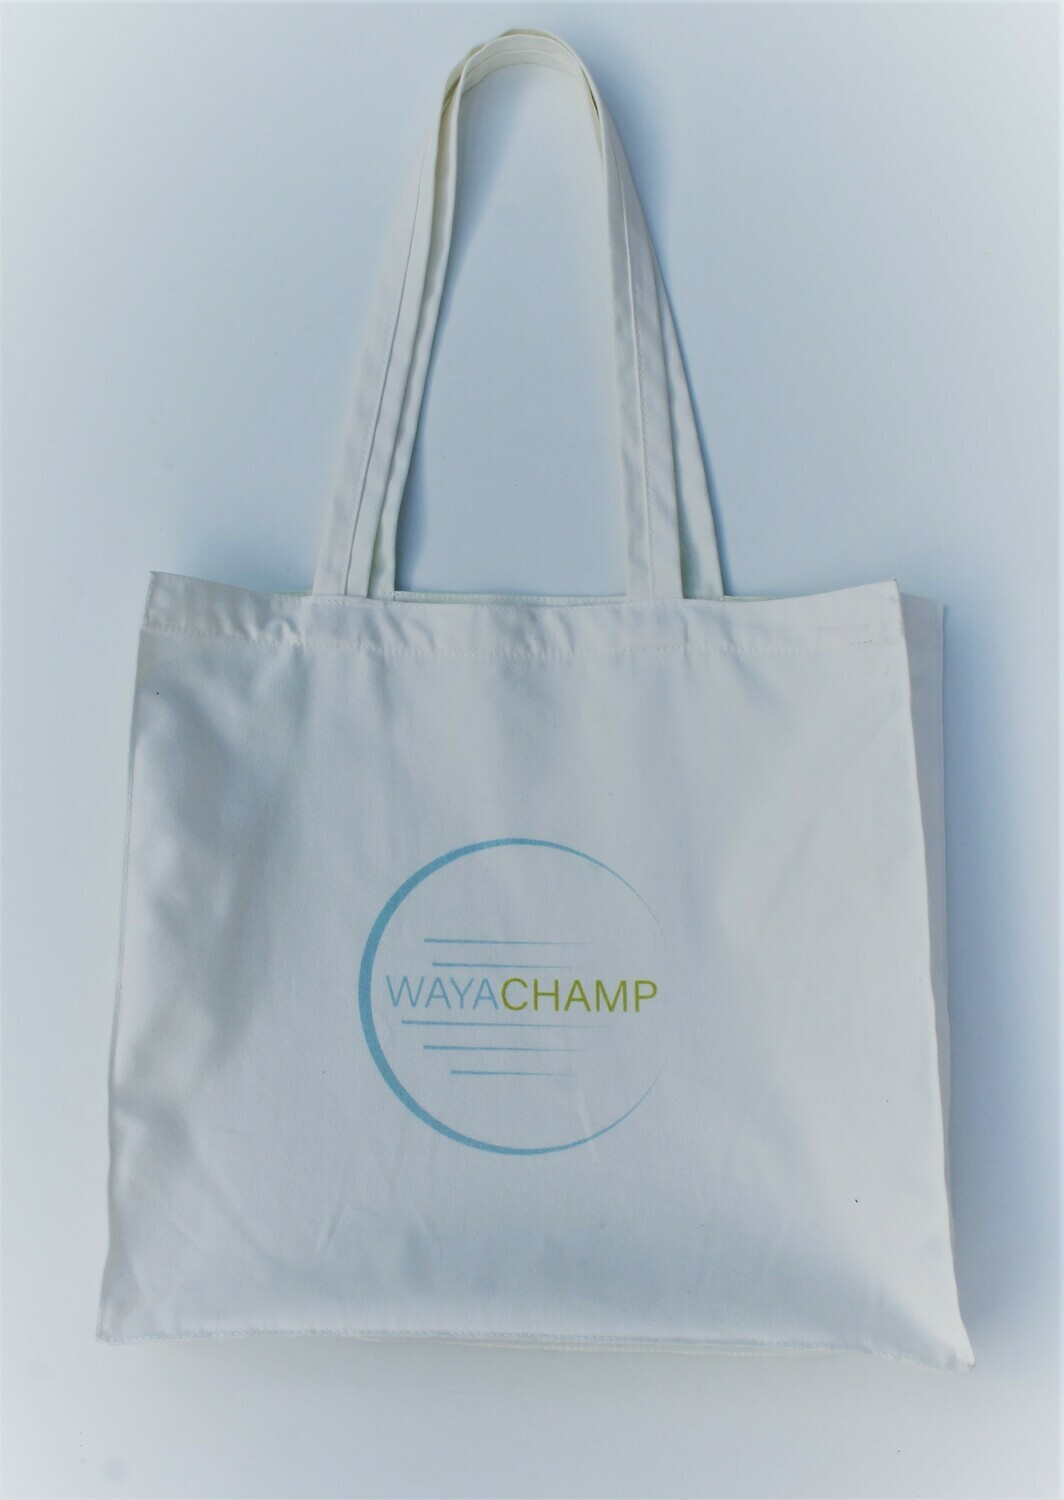 WAYACHAMP Tote Bag